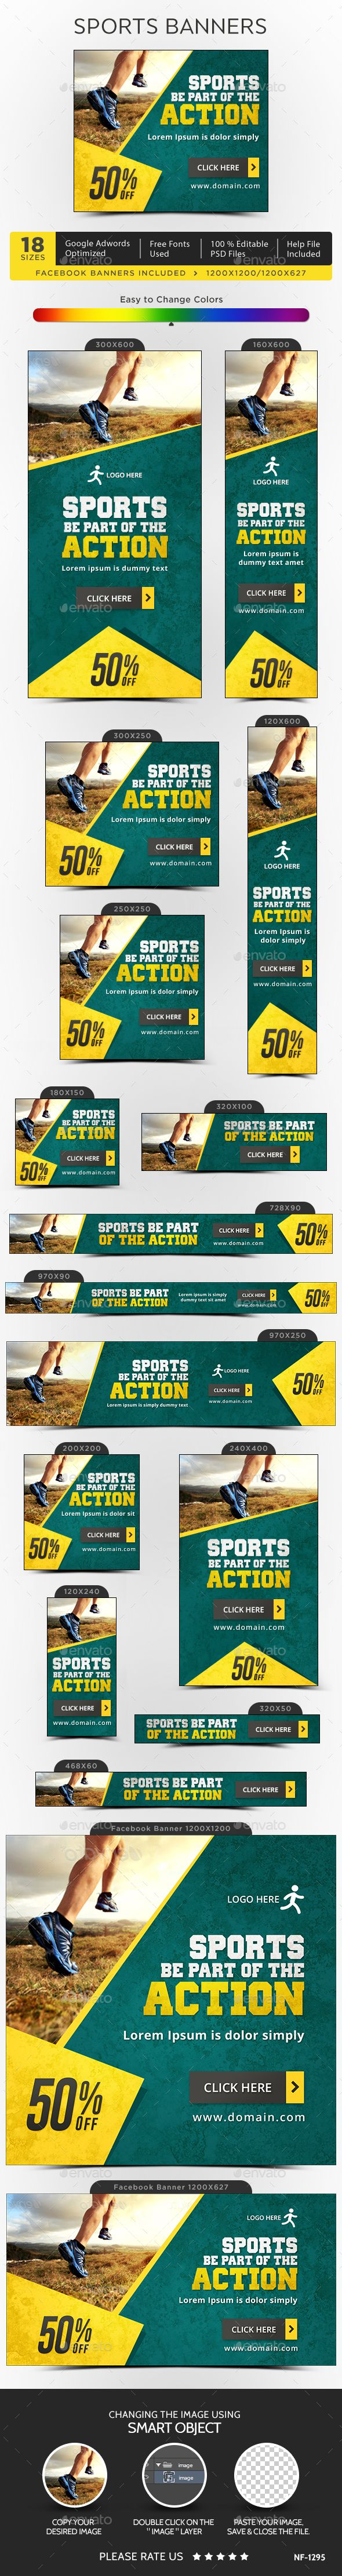 Sports Banners Design Template  - Banners & Ads Web Elements Design Template PSD. Download here: https://graphicriver.net/item/sports-banners/16161794?s_rank=1795?ref=yinkira